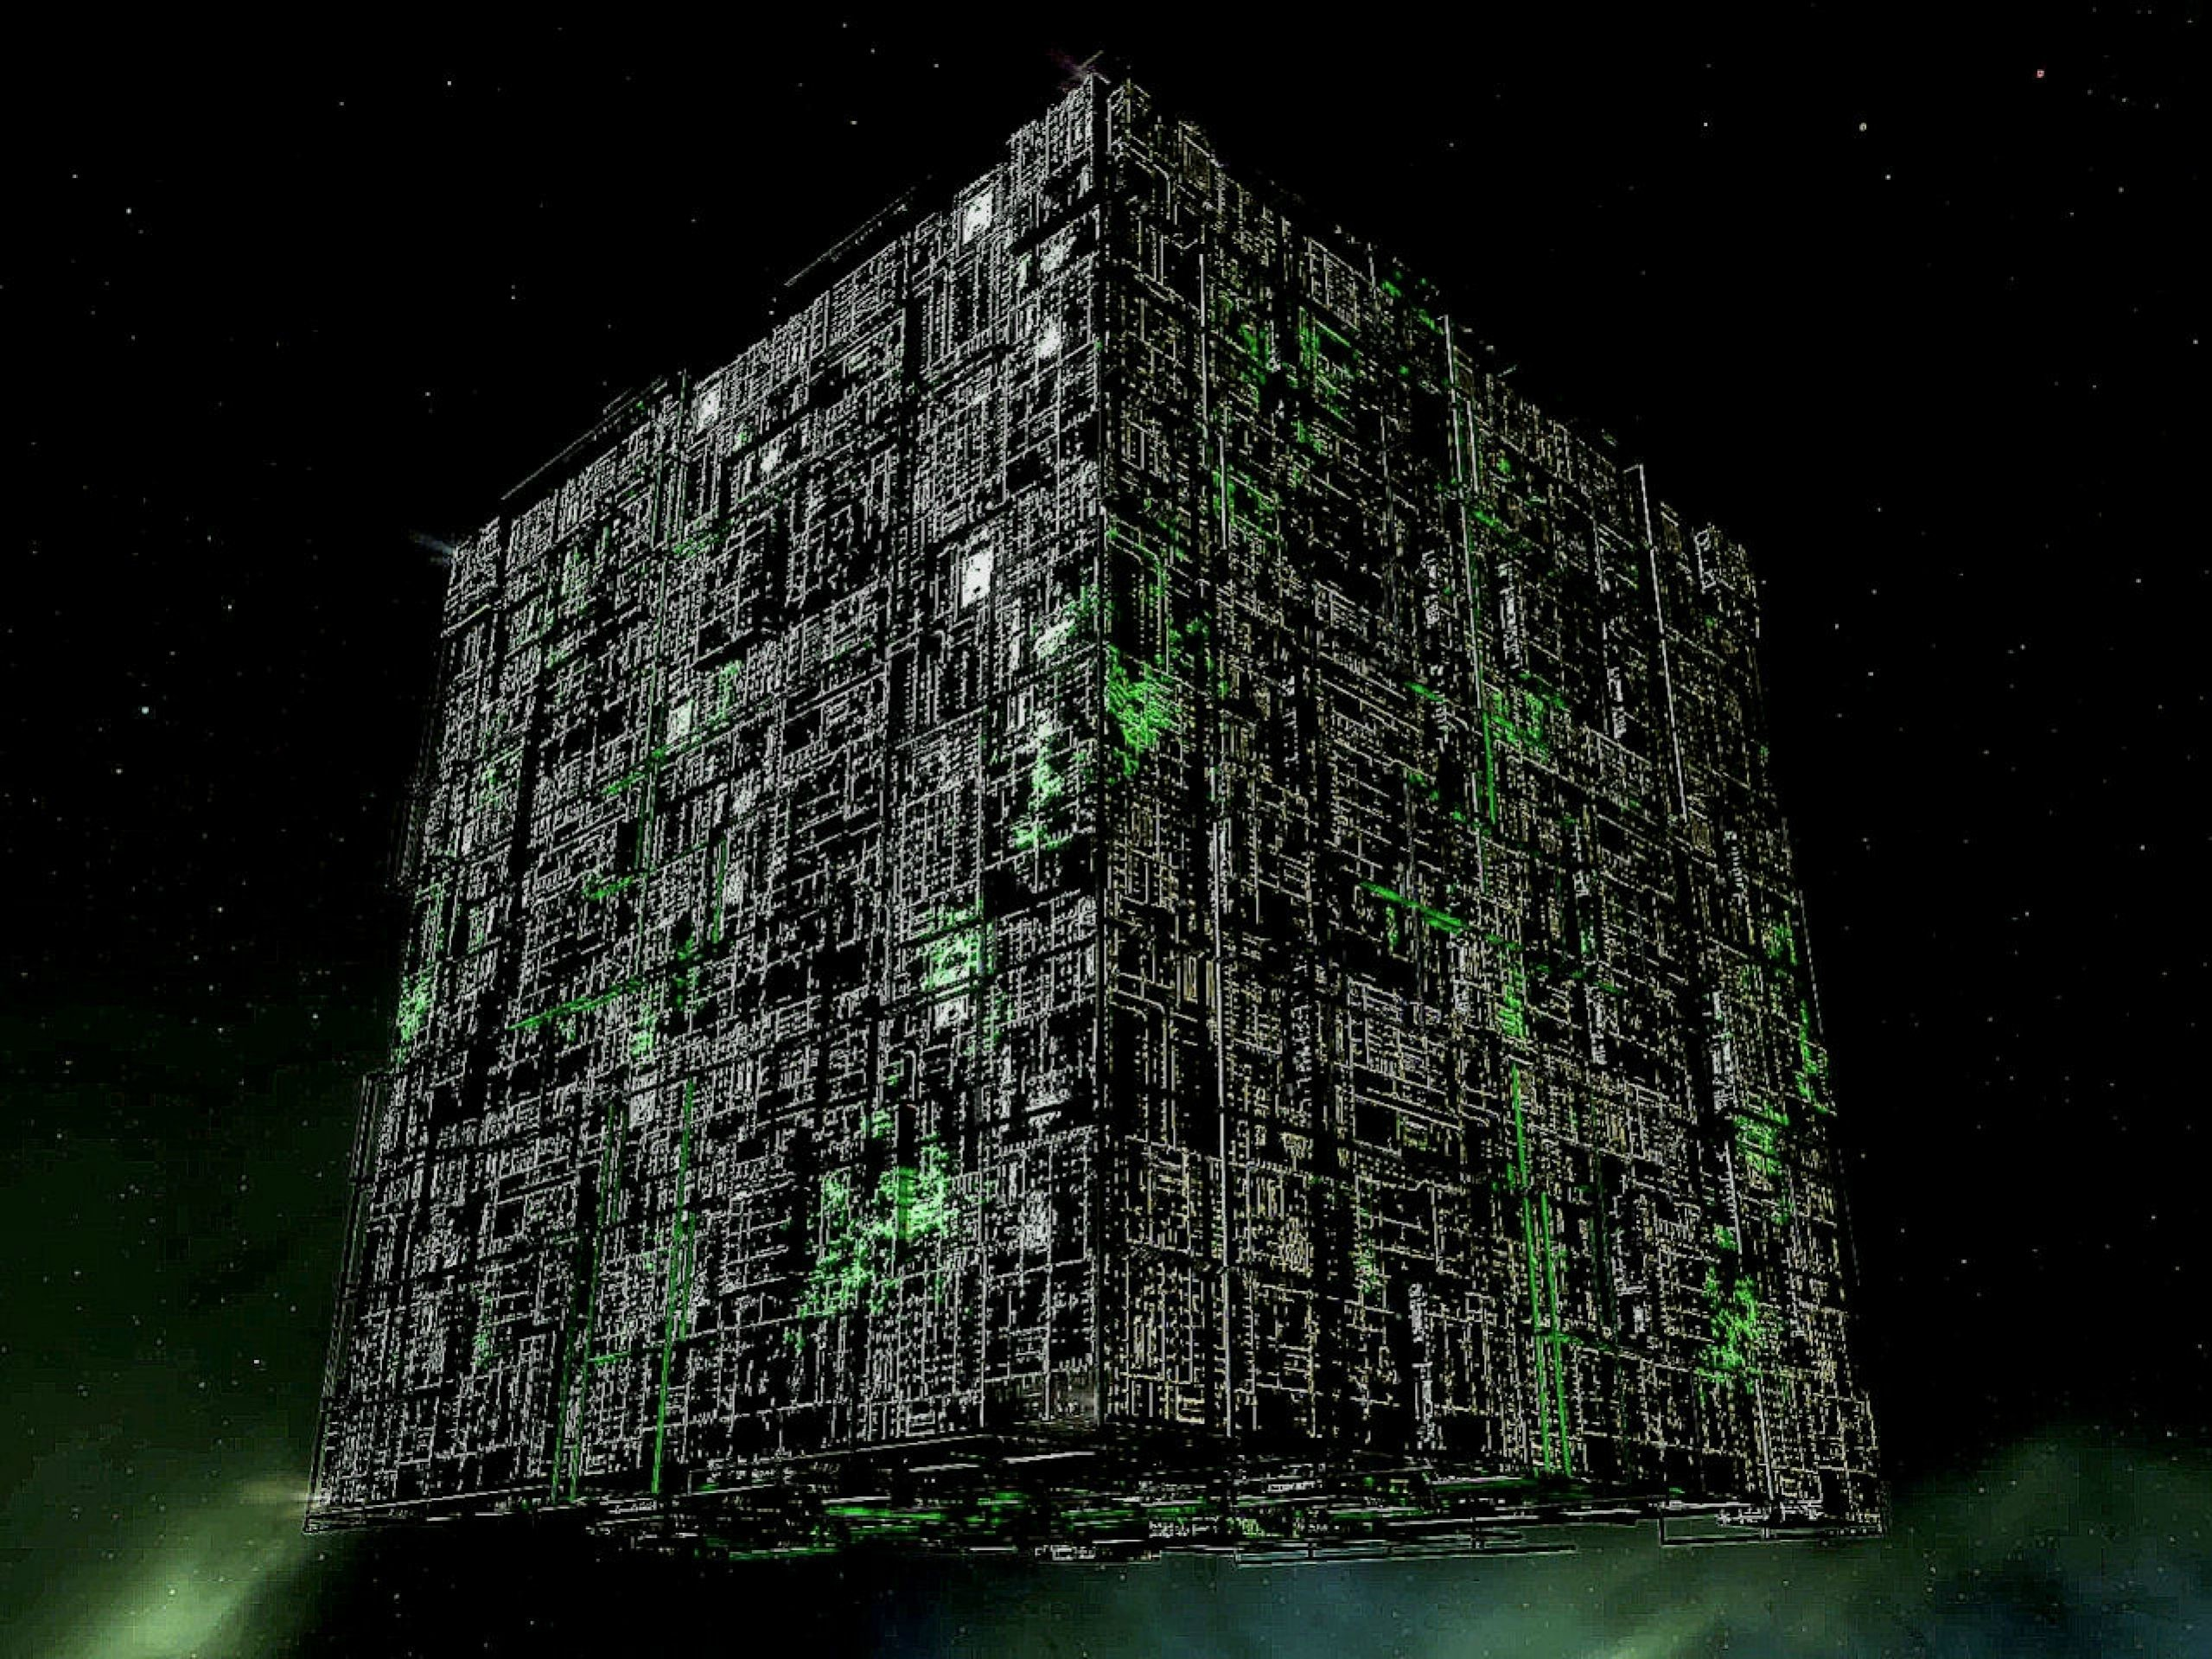 We are the Borg. Lower your shields and surrender your ships. We will add  your biological and technological distinctiveness to our own.